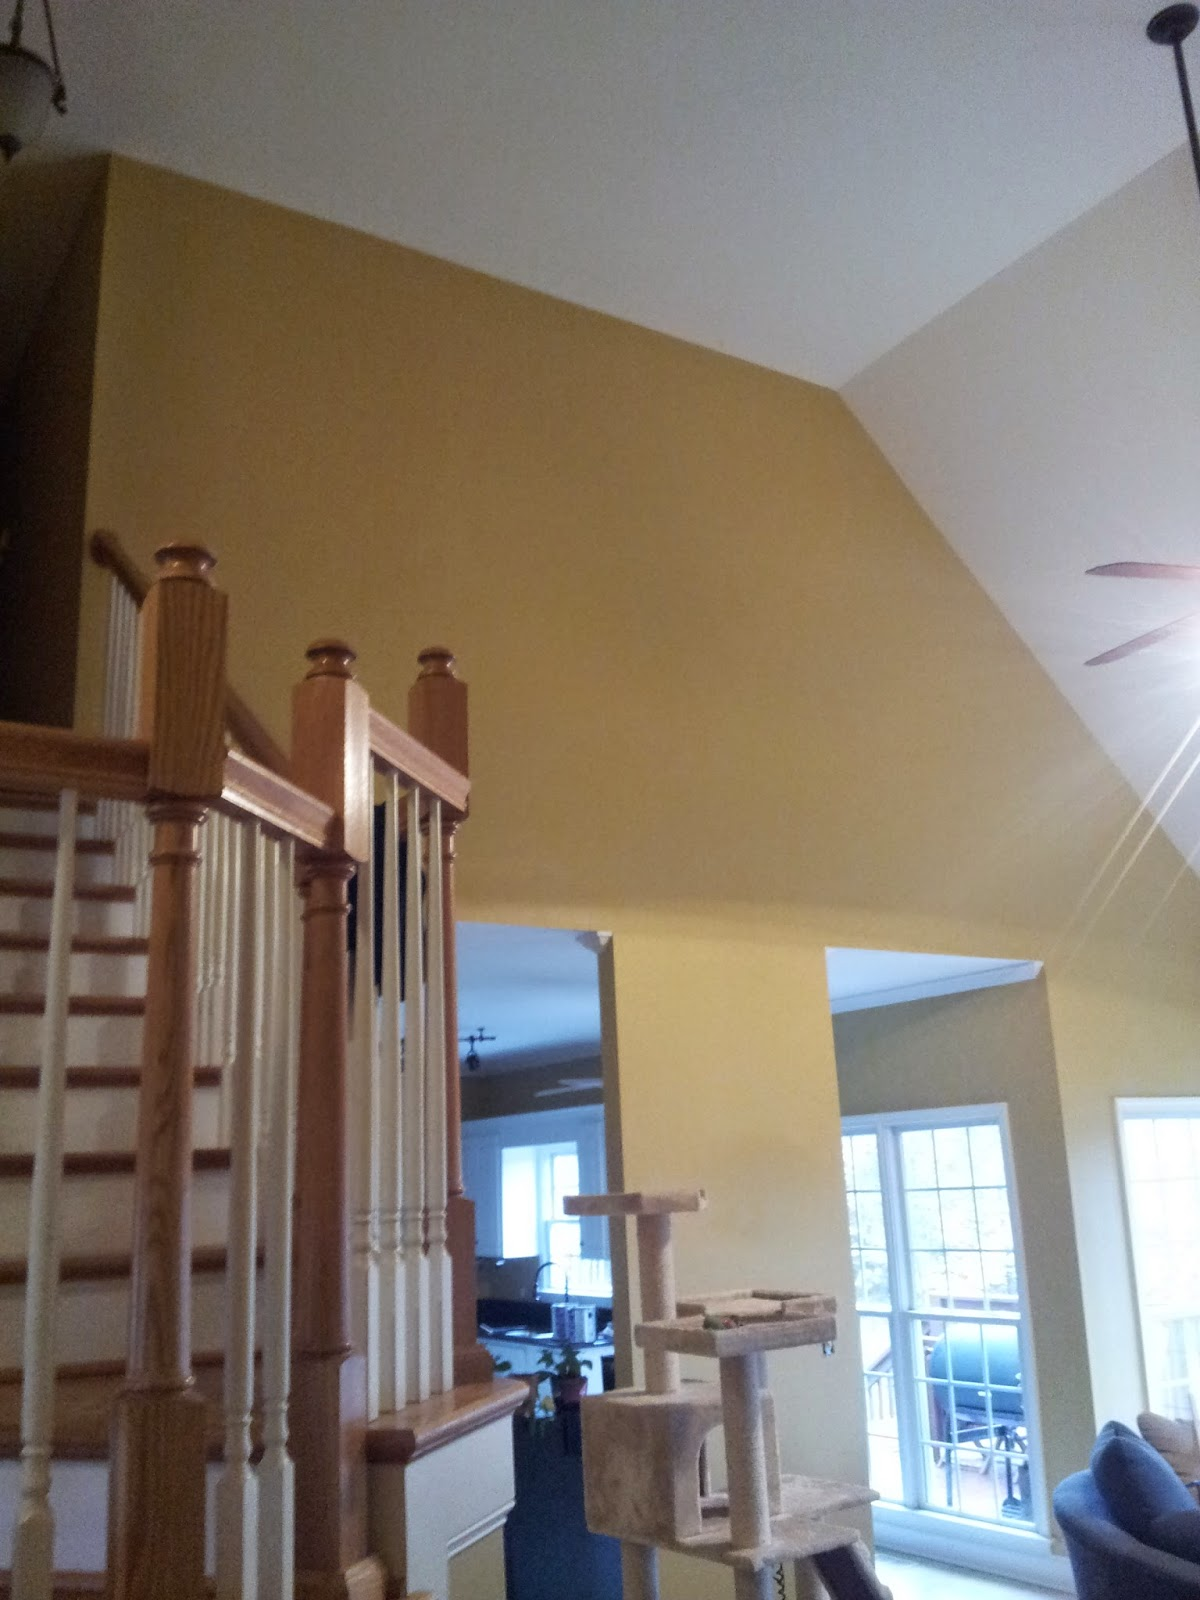 painters in Taylors, house painters, interior painters